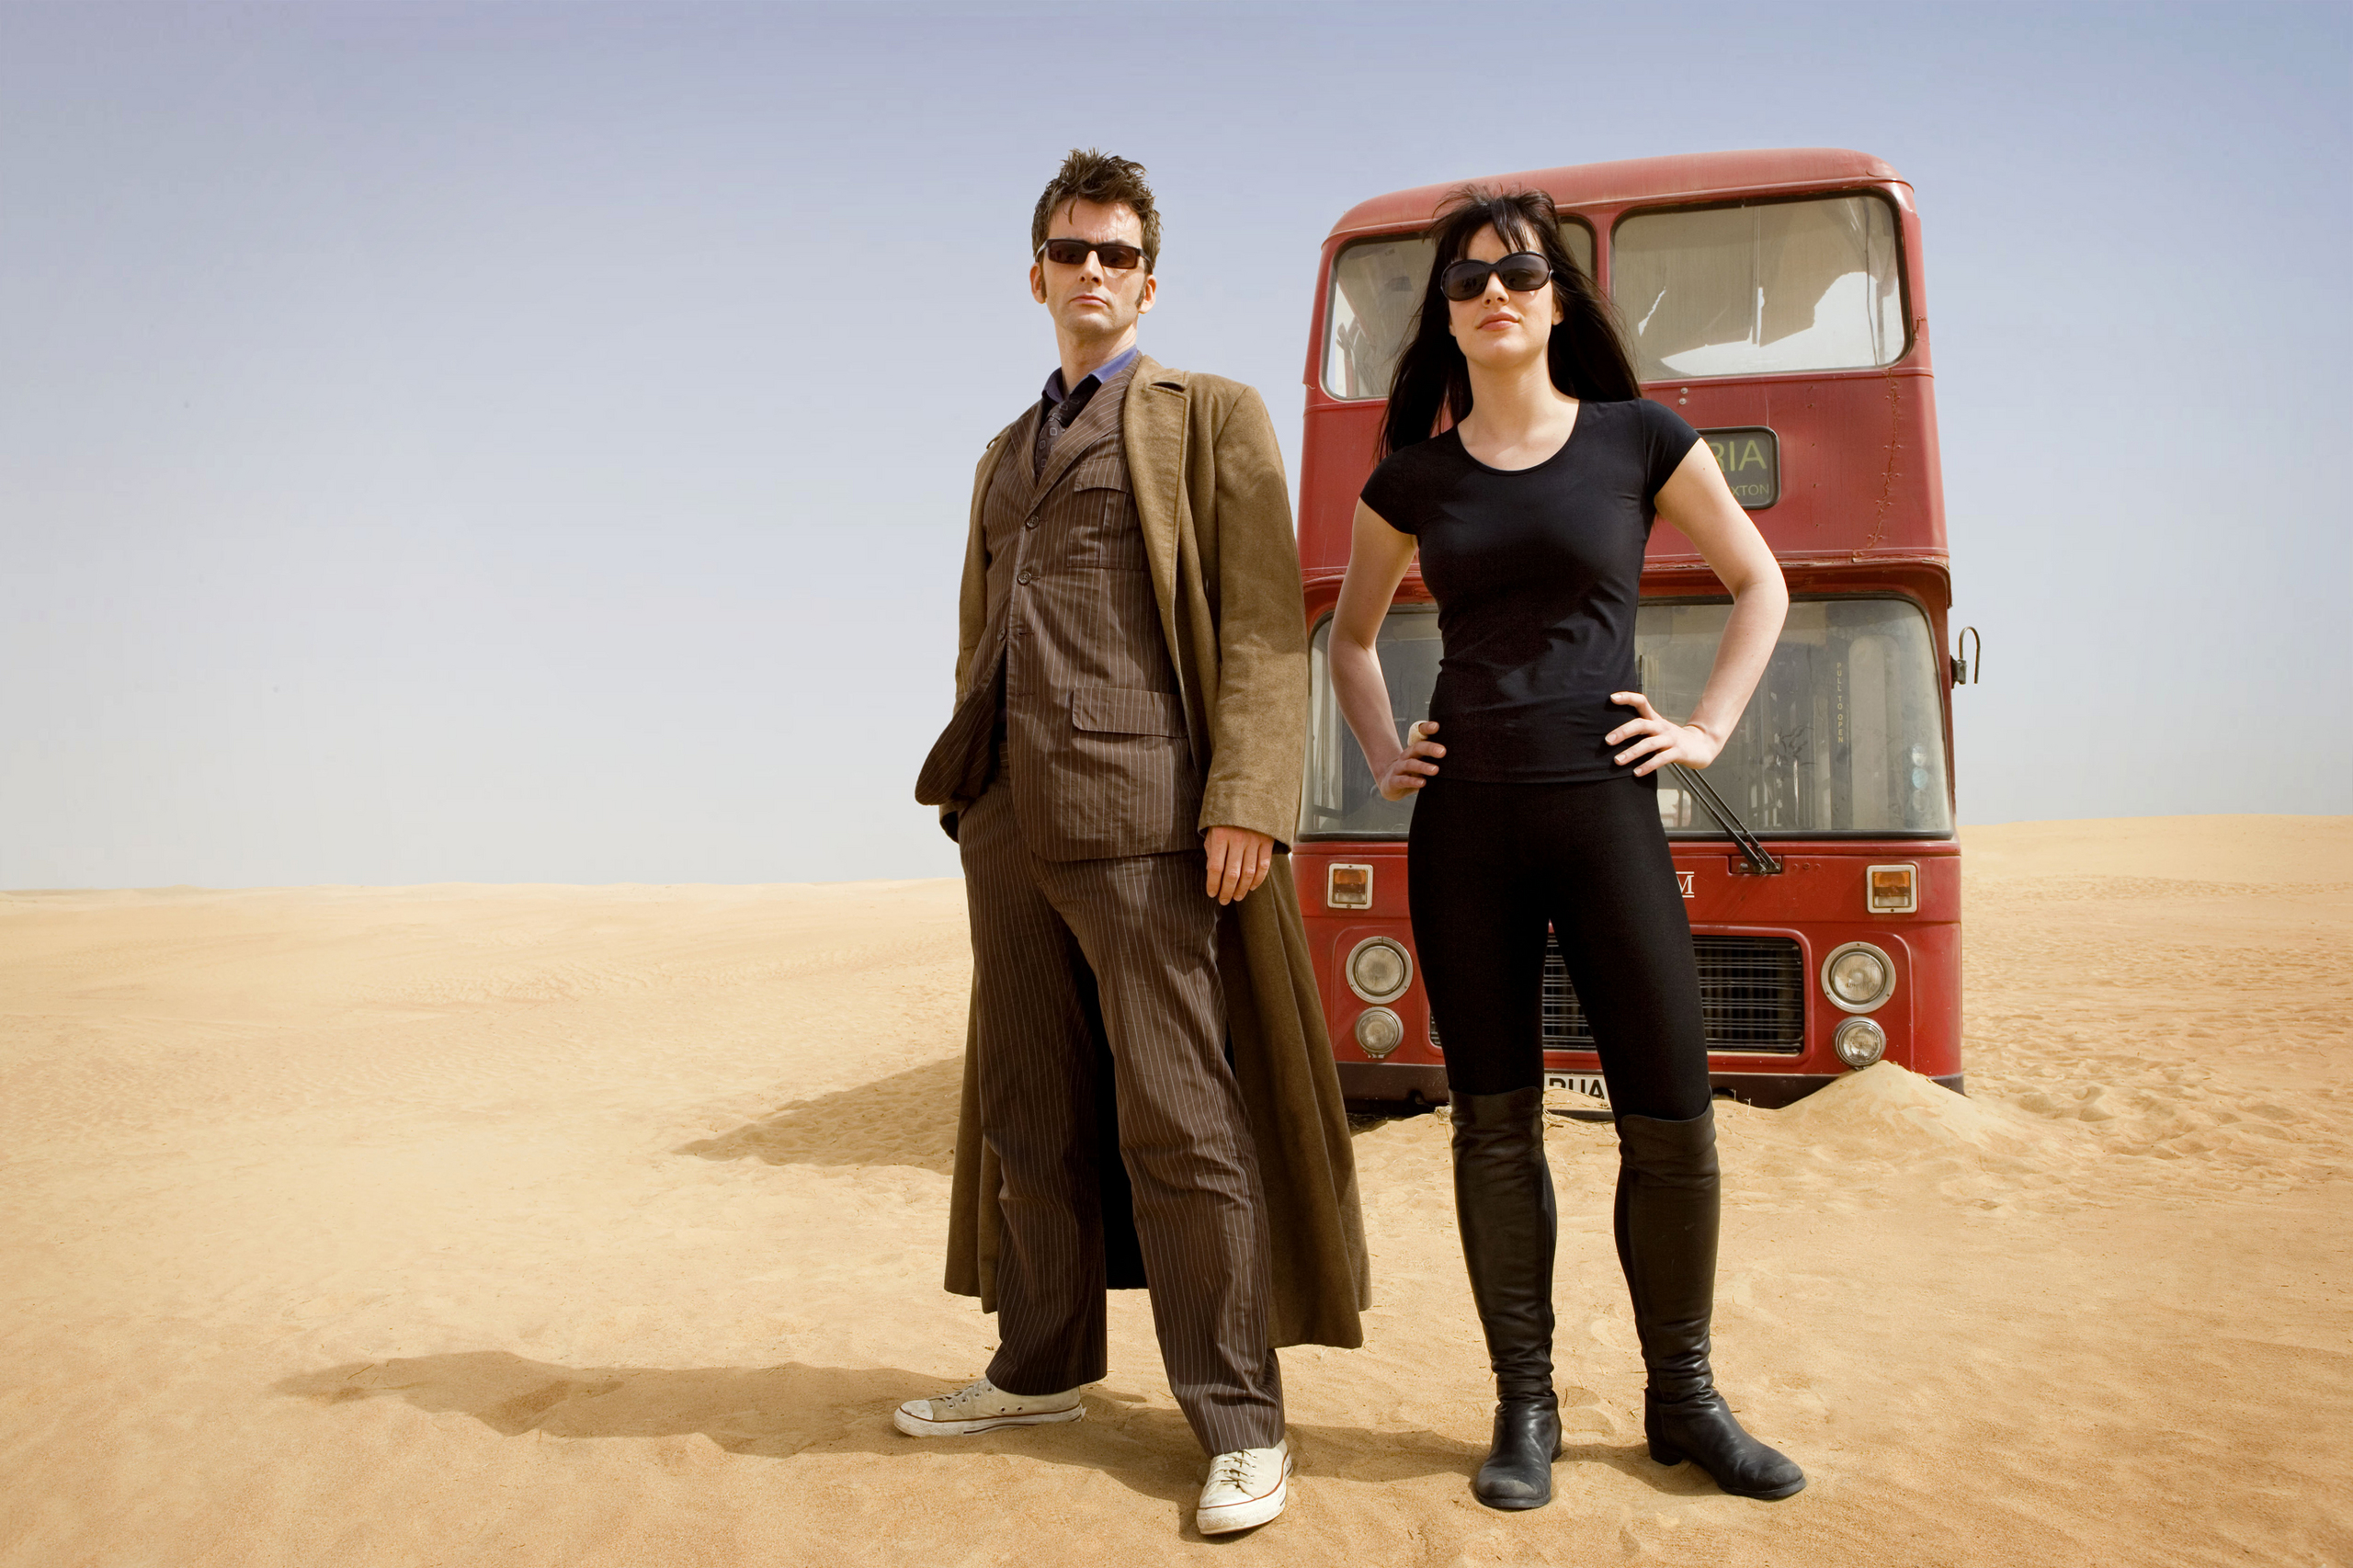 Doctor who special planet of the dead watch - New movies coming out ...